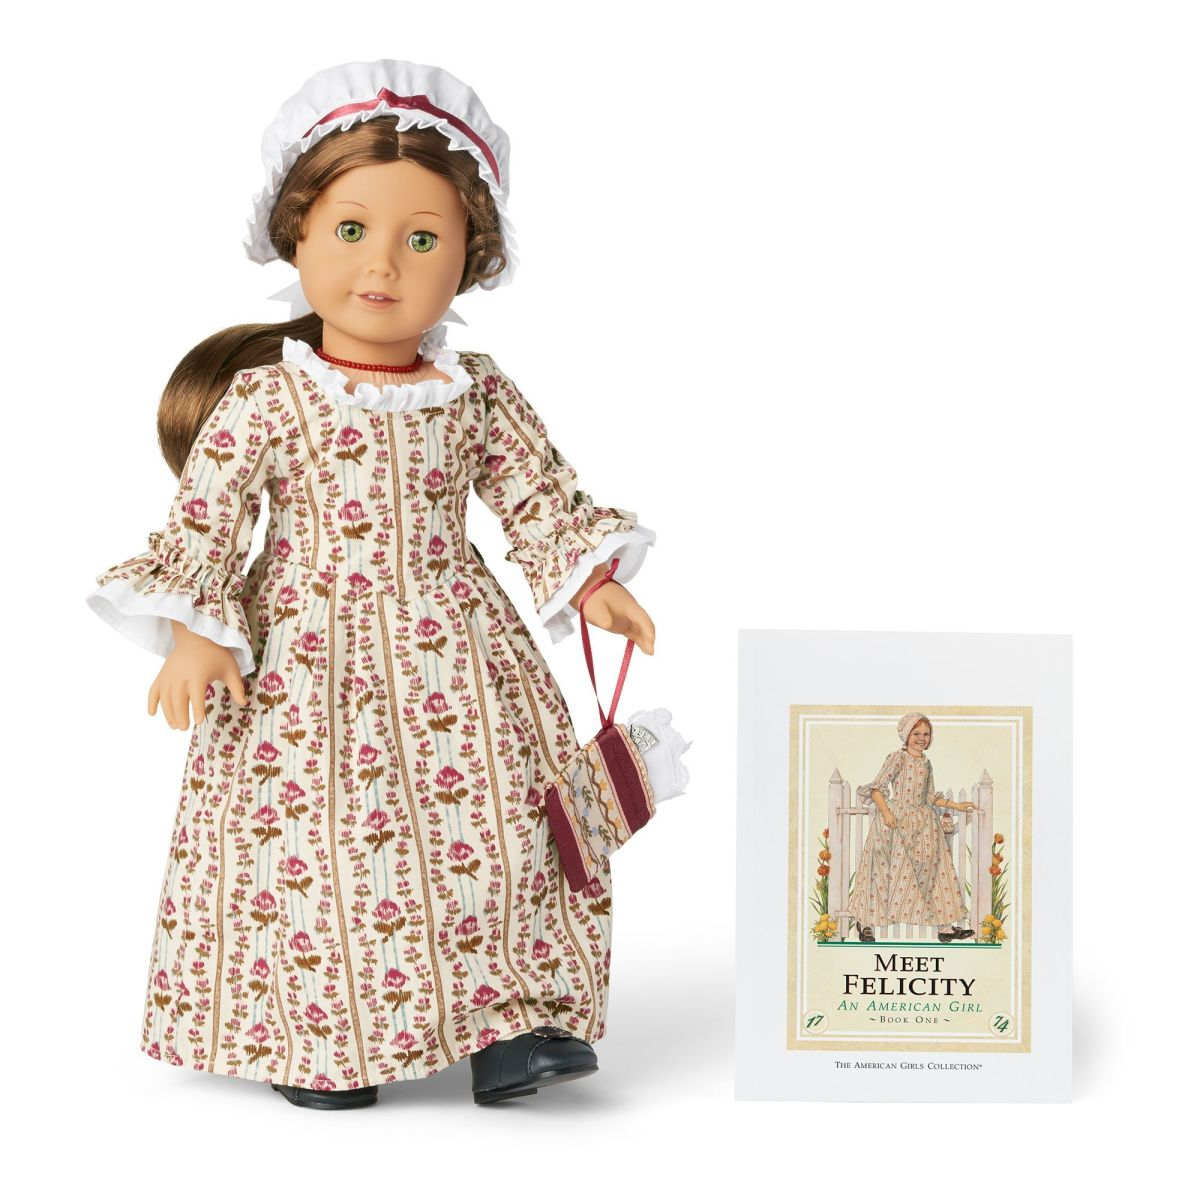 The 35th Anniversary Felicity doll in her original Meet Outfit, pictured wearing her original accessories and posed in front of a Meet Felicity book